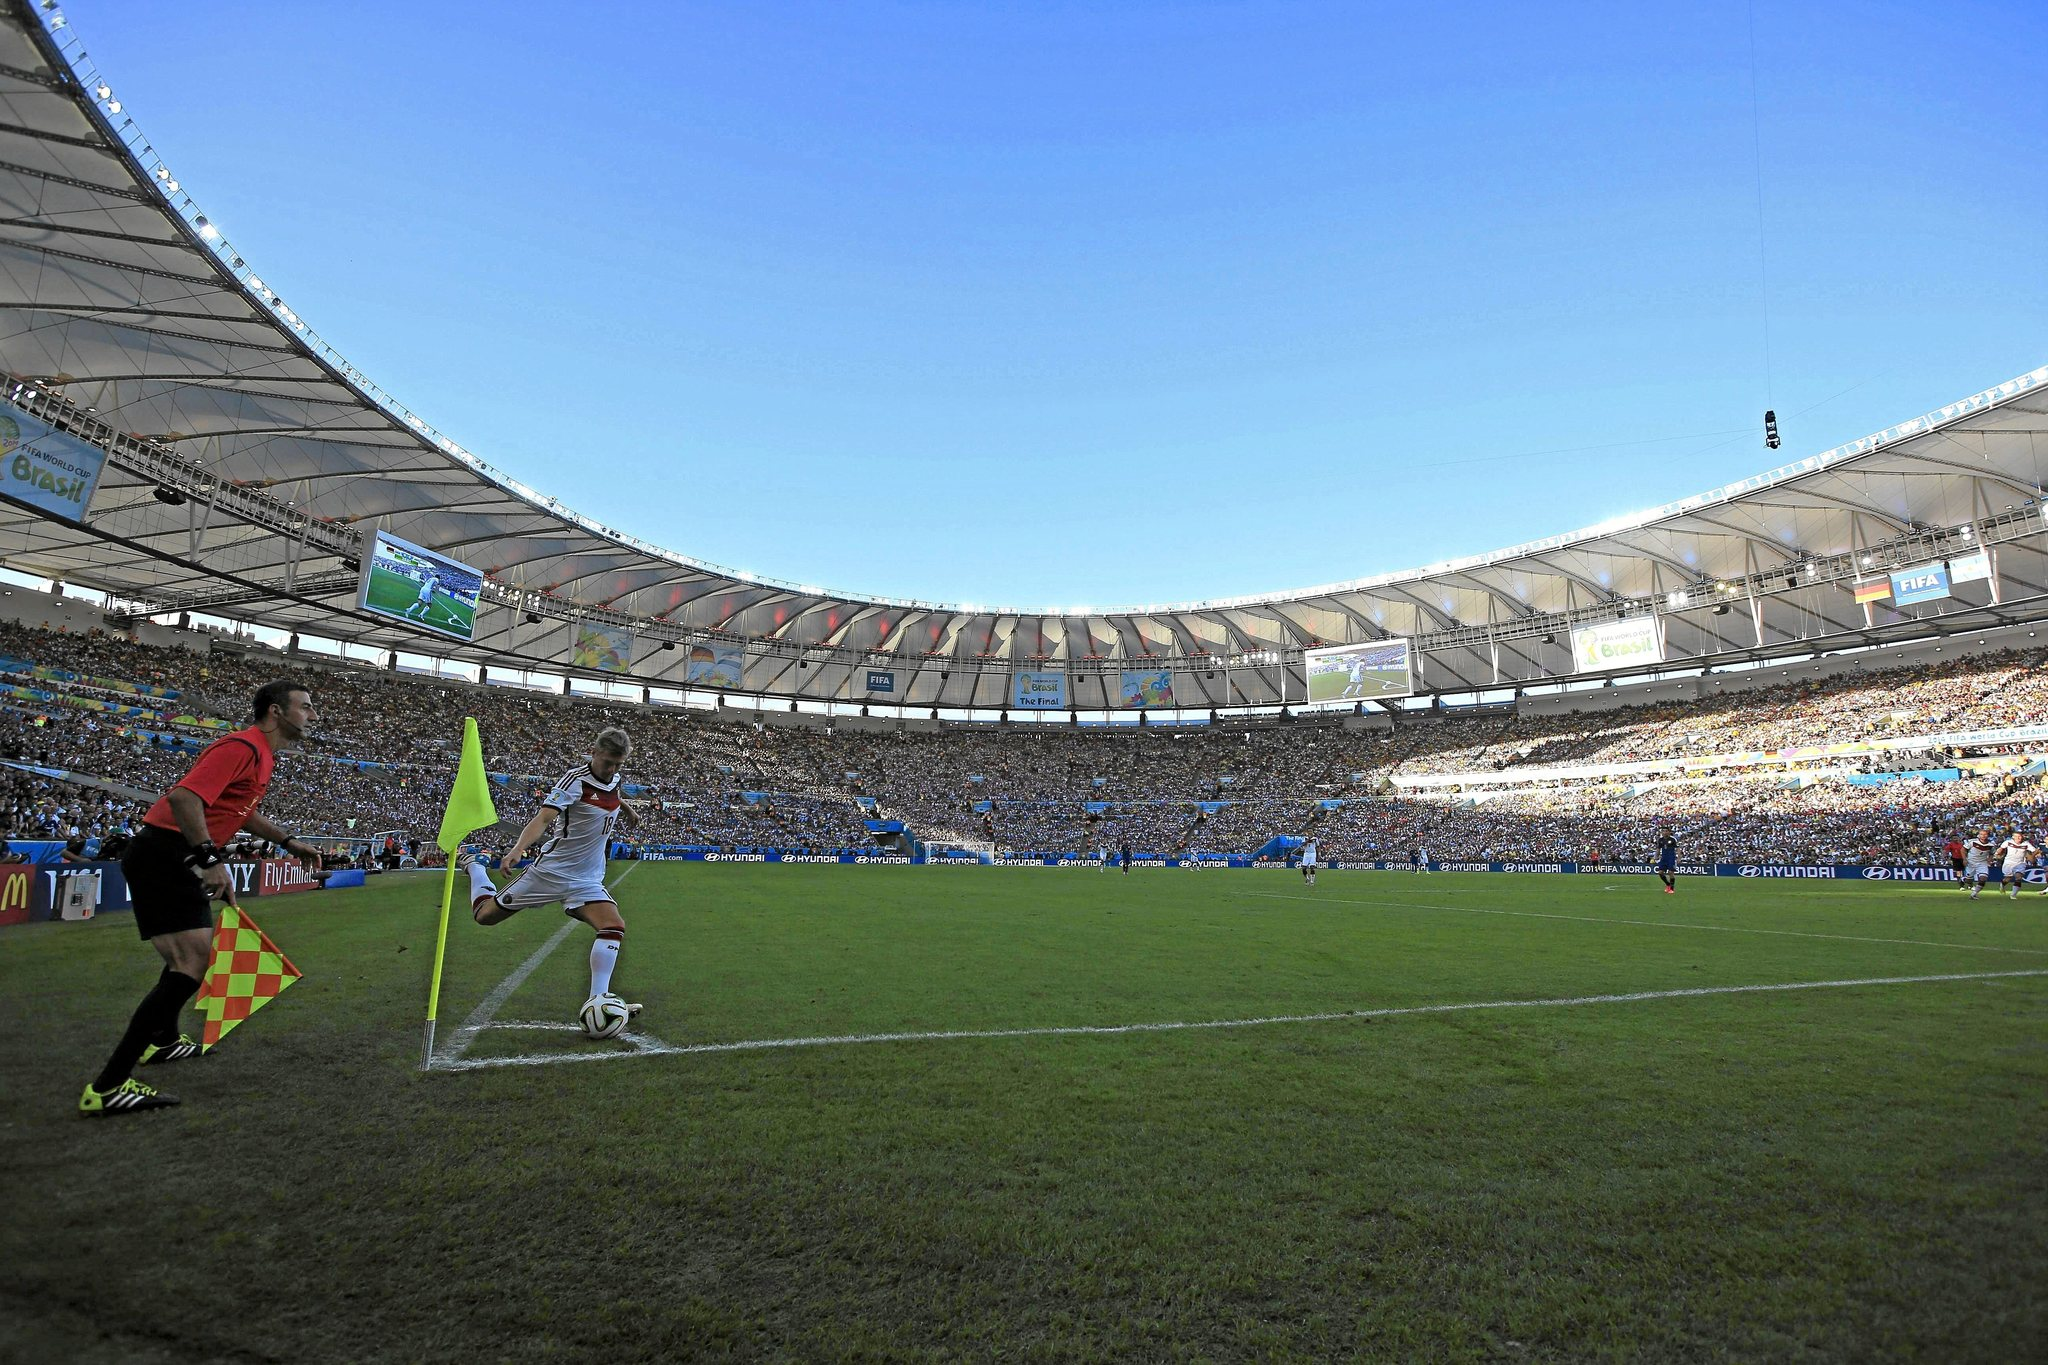 Fifa Porn maracana stadium the site of a porn film | marca in english